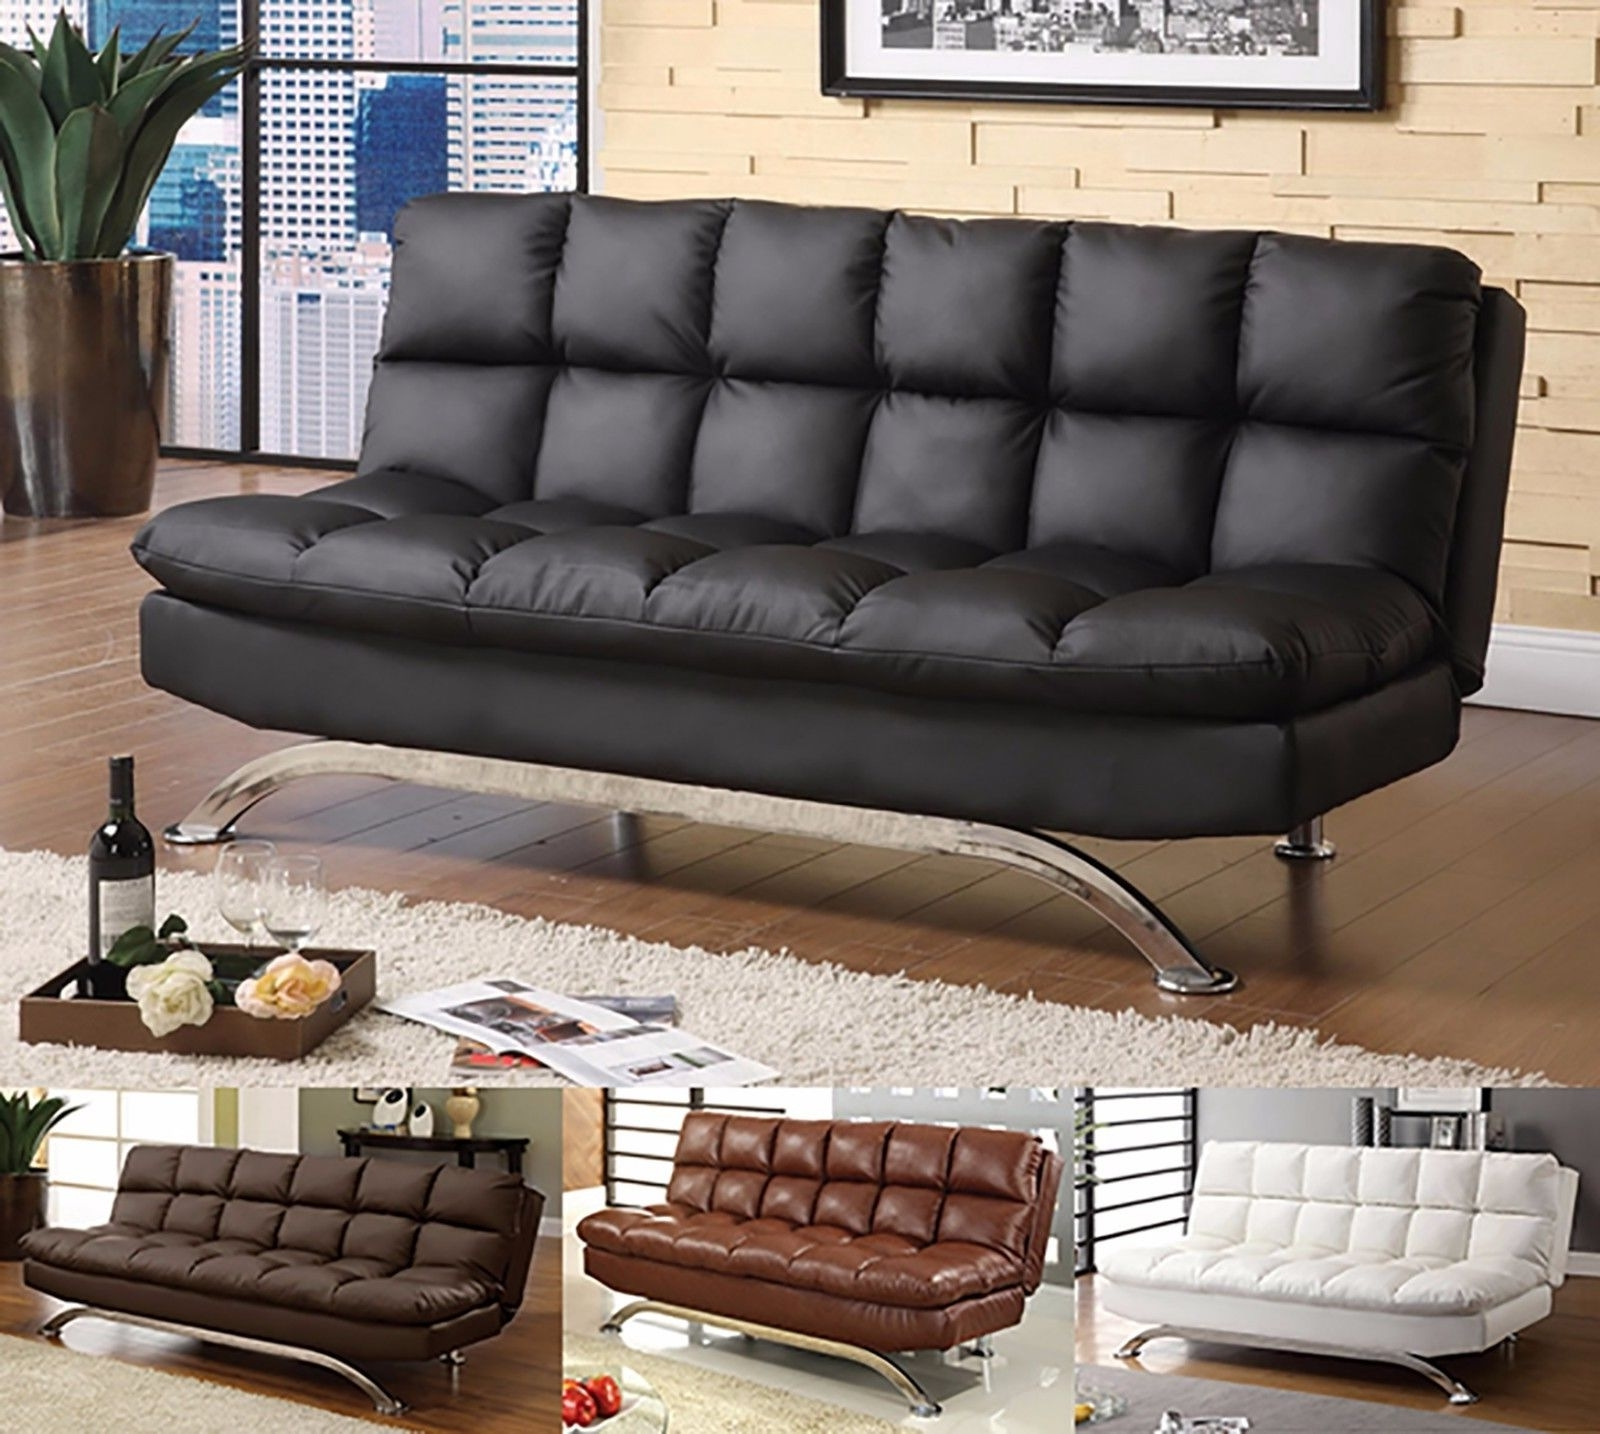 Furniture : Mattress Firm University Fold Out Couch Sleeper In Trendy Tuscaloosa Sectional Sofas (View 6 of 15)